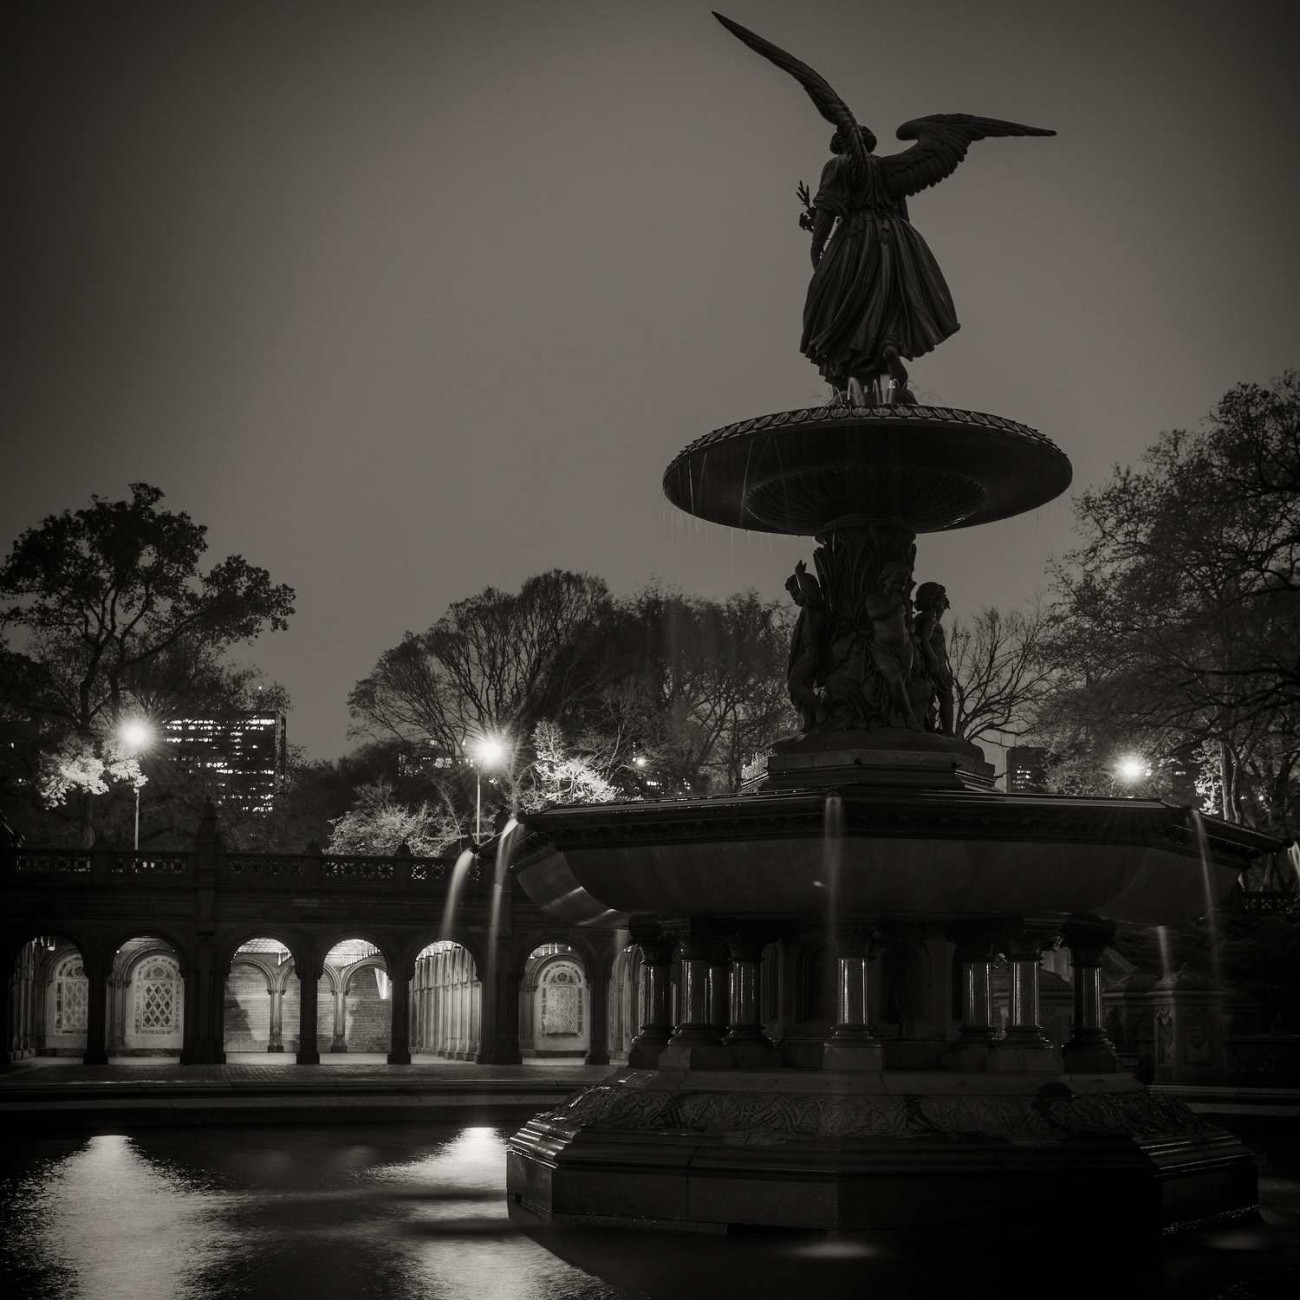 Bethesda Fountain night, Central Park, New York, 2013